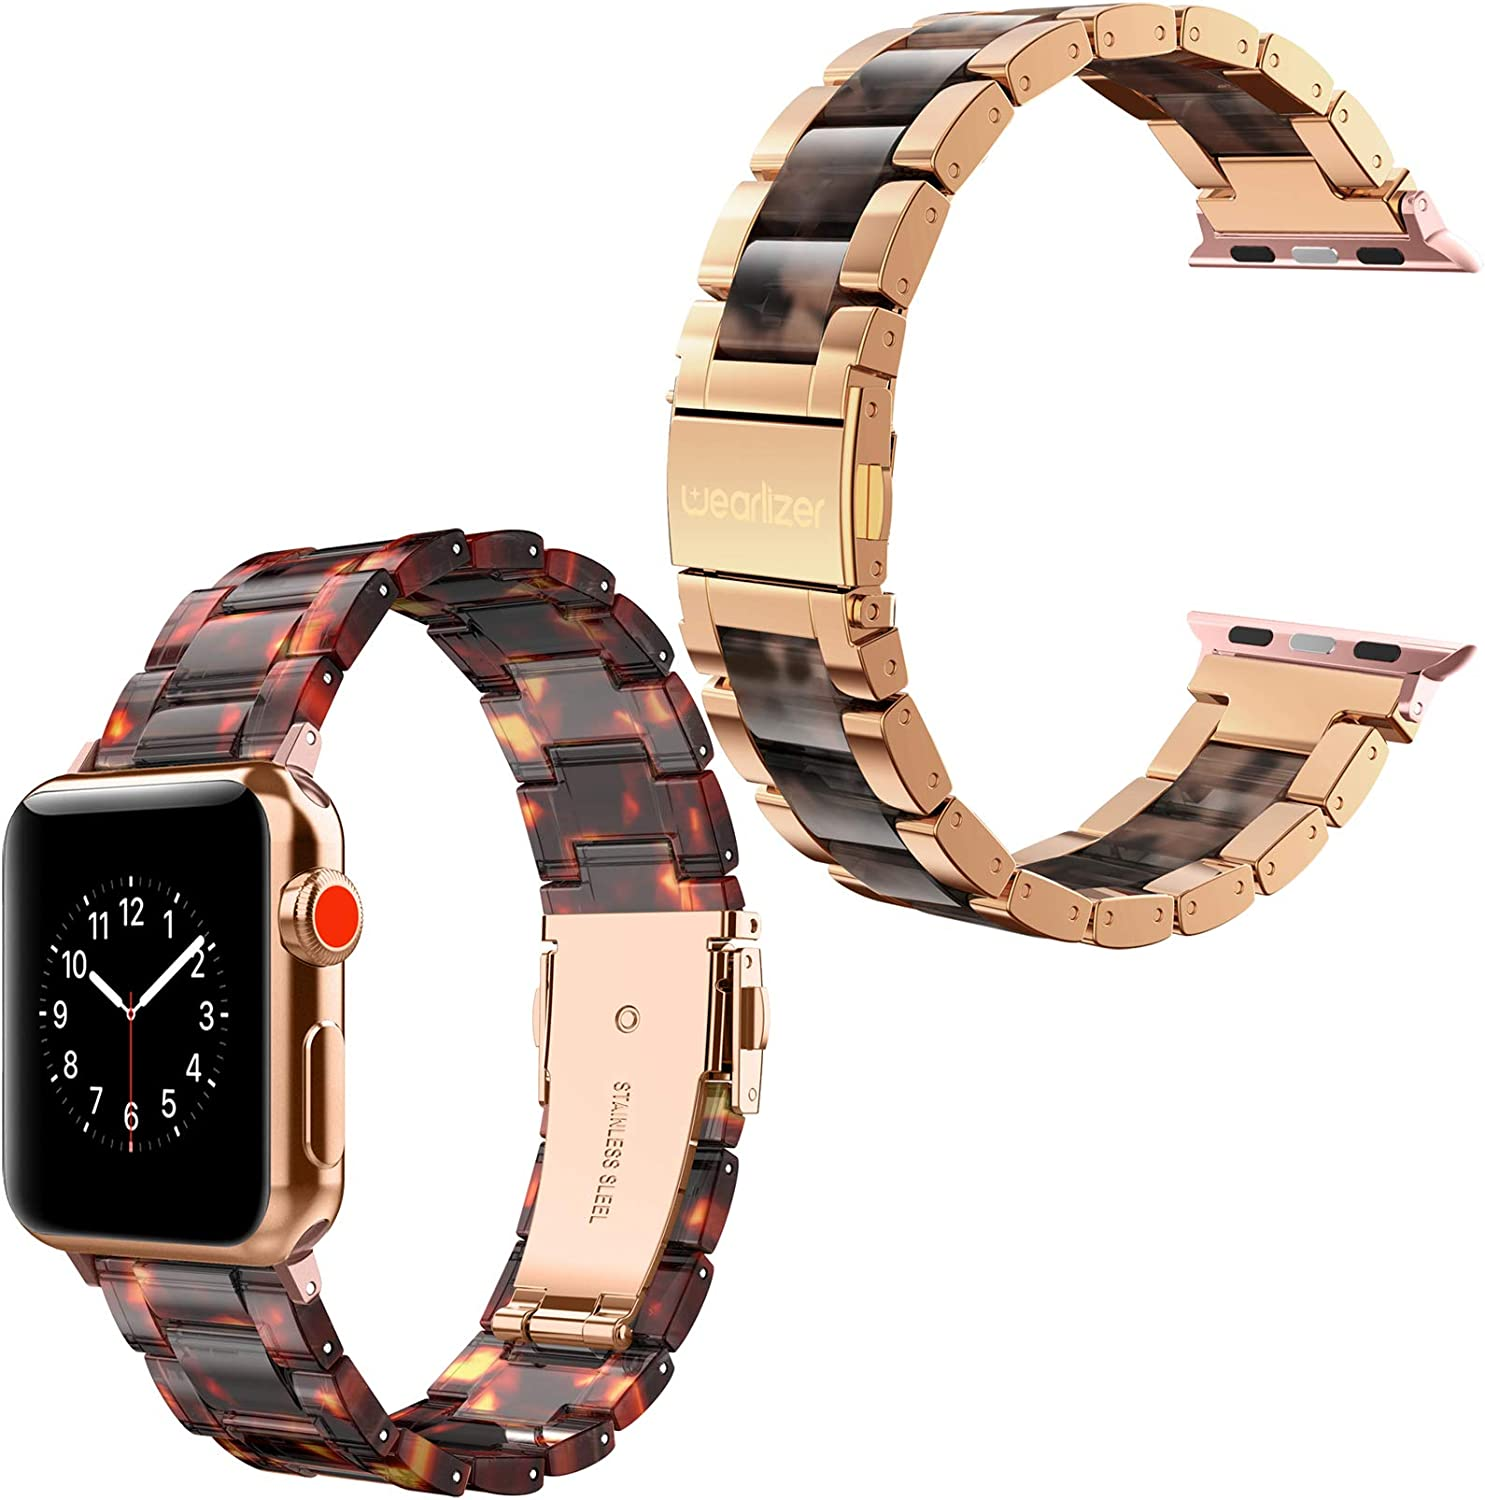 Wearlizer Compatible with Apple Watch Band 38mm 40mm for iWatch SE Metal & Resin Womens Wristband Series 6 5 4 3 2 1 Sport-Deep Rose Gold+Tortoise/Tortoise